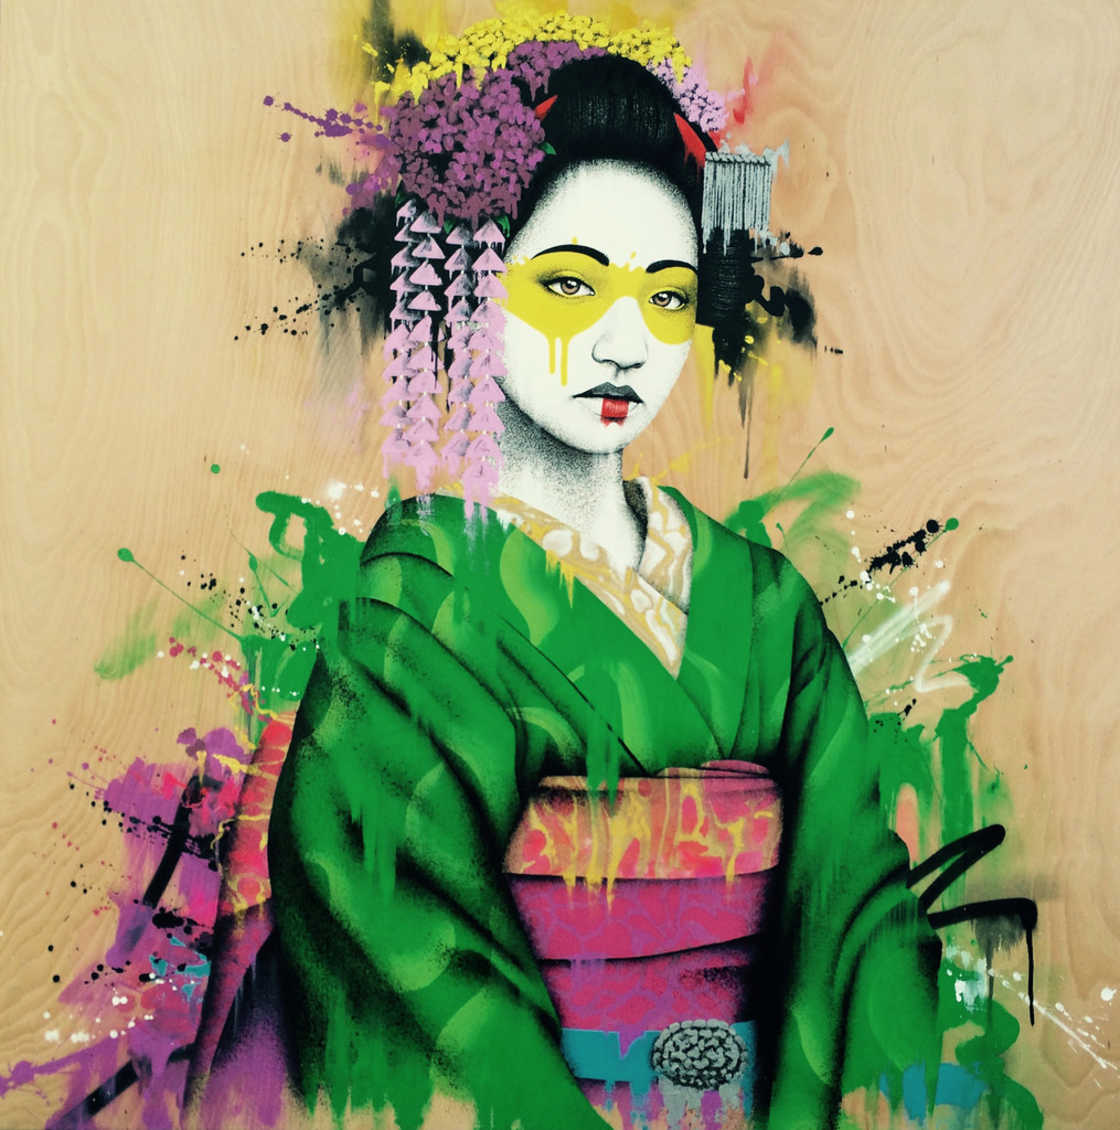 Street Art - Beautiful portraits by Fin DAC